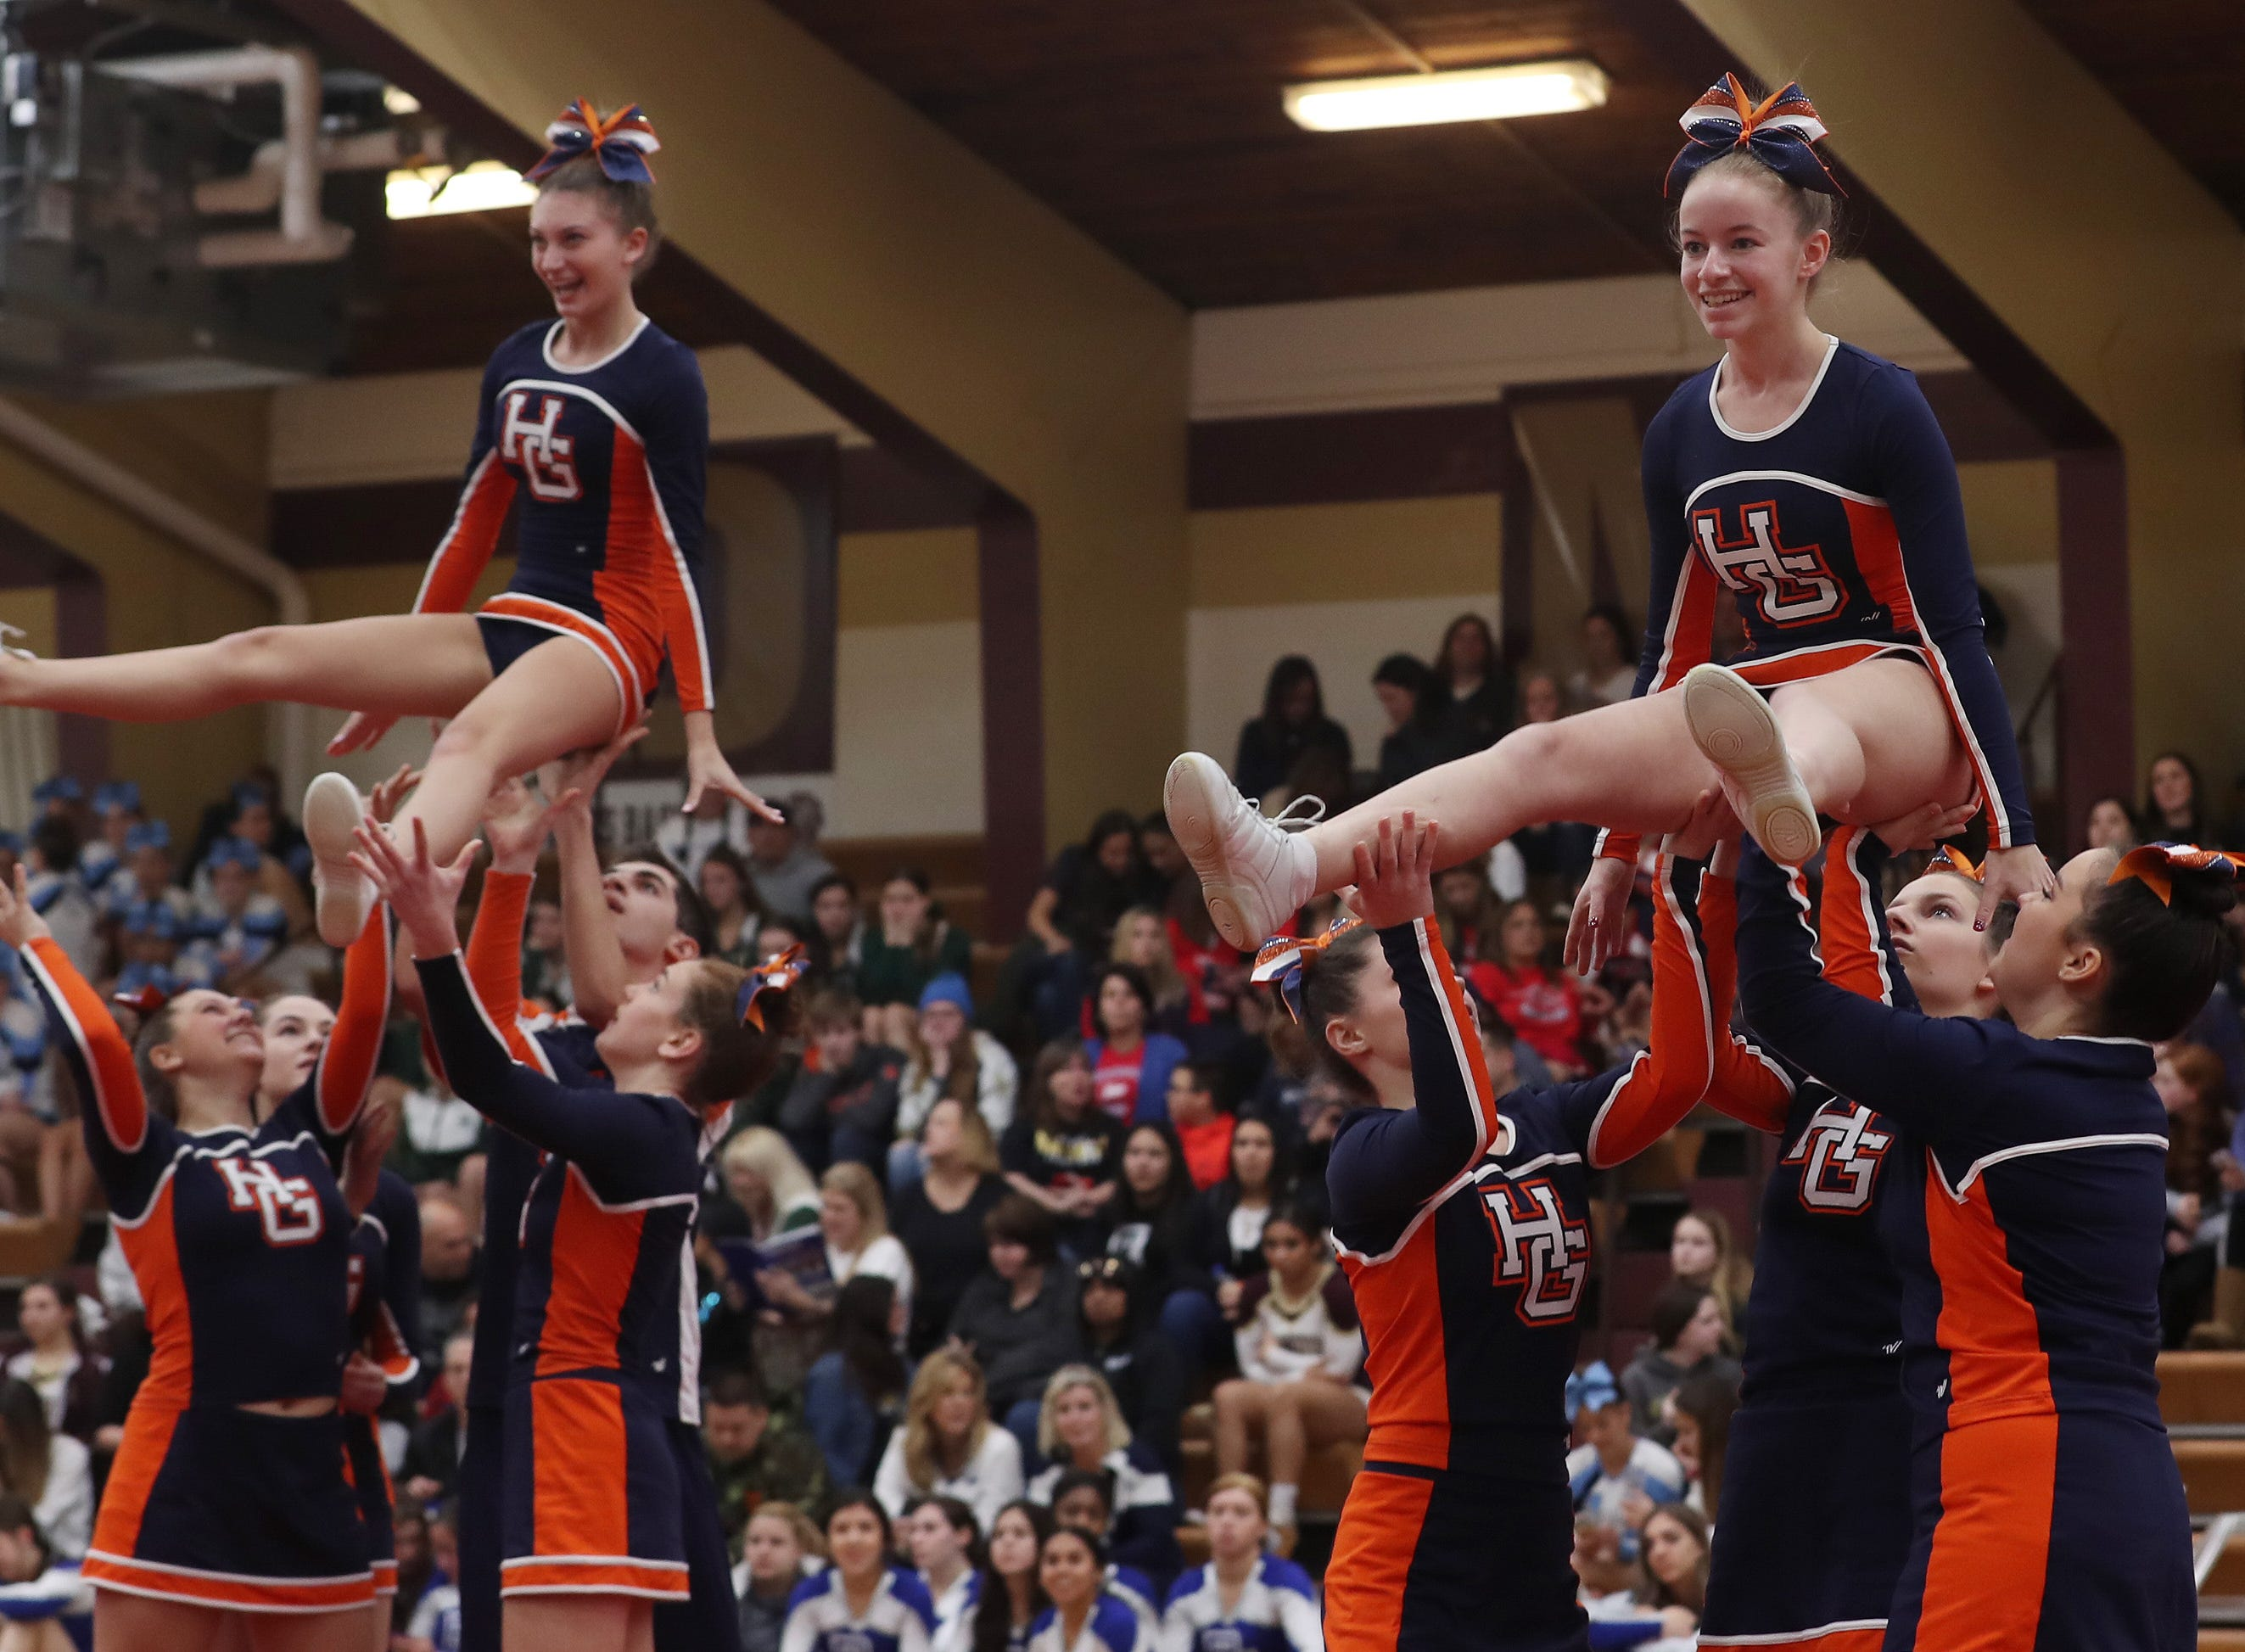 Horace Greeley High School competes during the Section 1 cheerleading championships at Arlington High School in Freedom Plains Feb. 16, 2019.